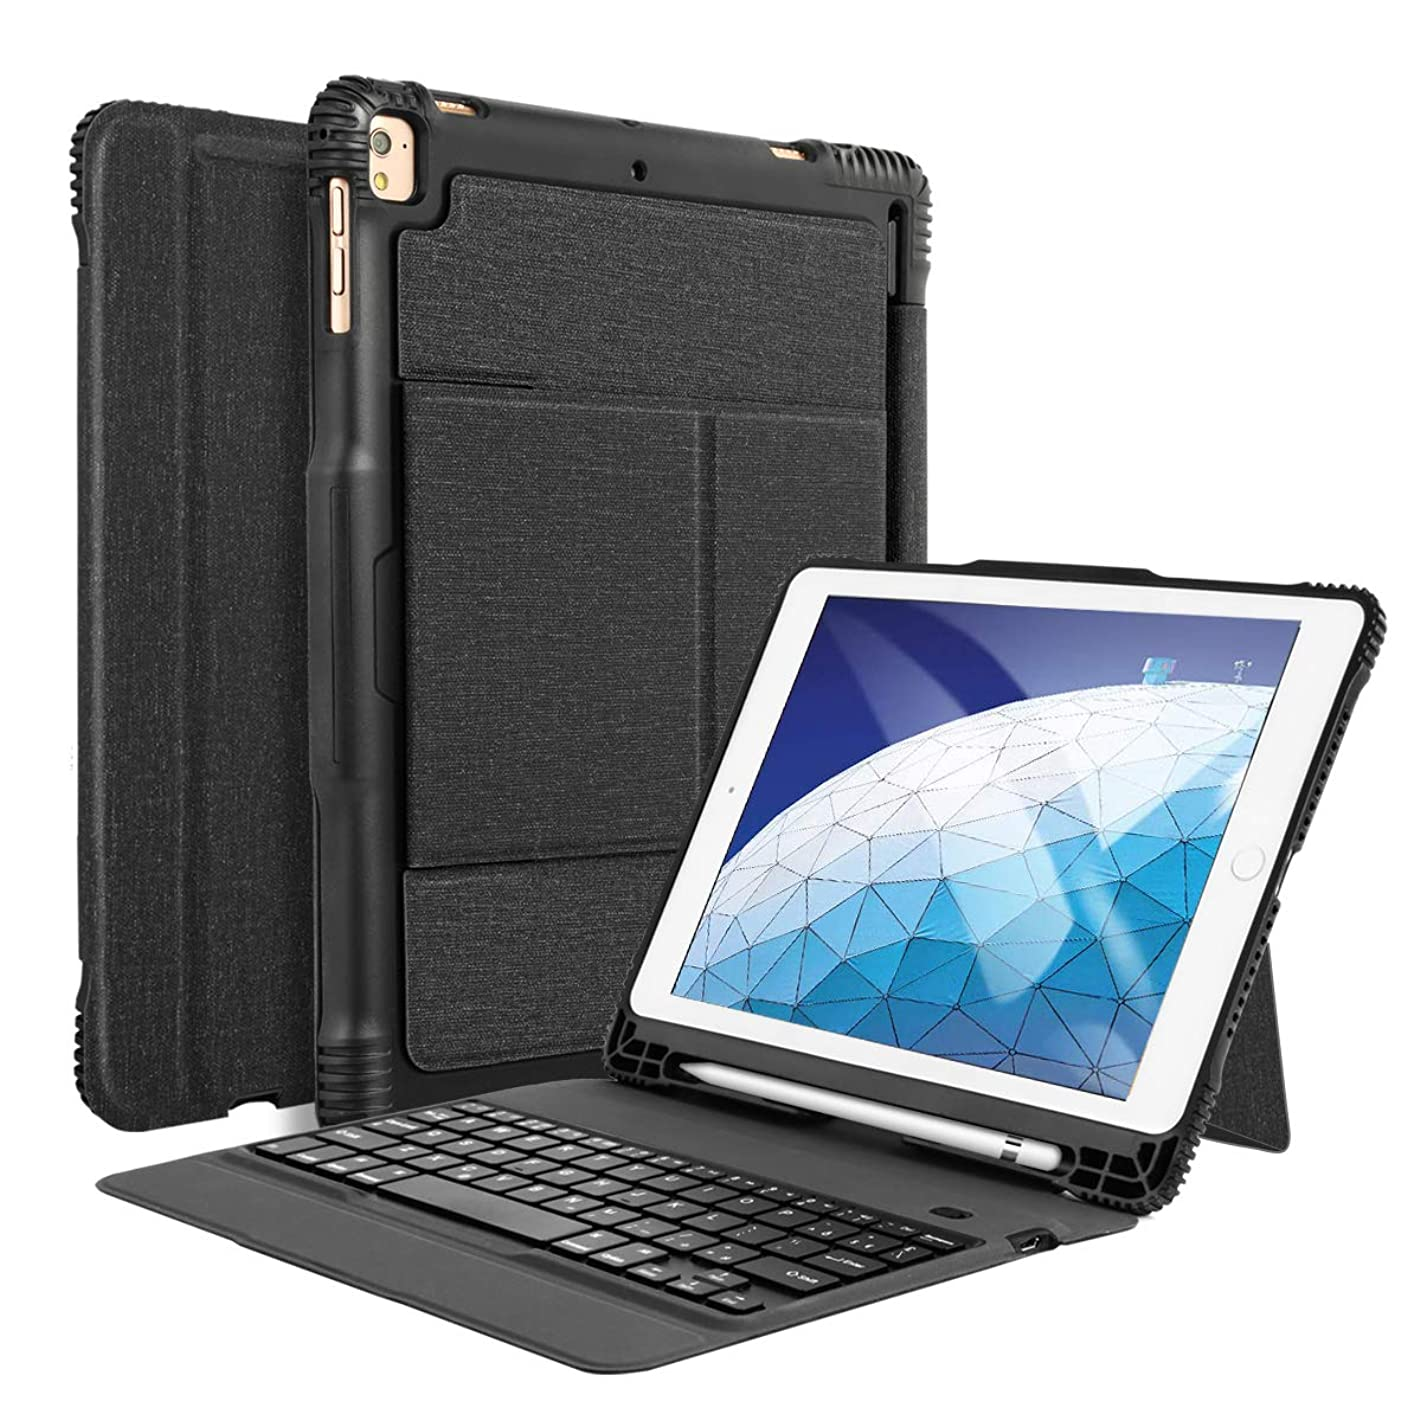 iPad Air 3rd Gen 10.5 Keyboard Case with Pencil Holder, Detachable Bluetooth Keyboard with Shockproof Heavy Duty Full-Body Protective Case for iPad Air 10.5 (3rd Gen) 2019 & iPad Pro 10.5 2017